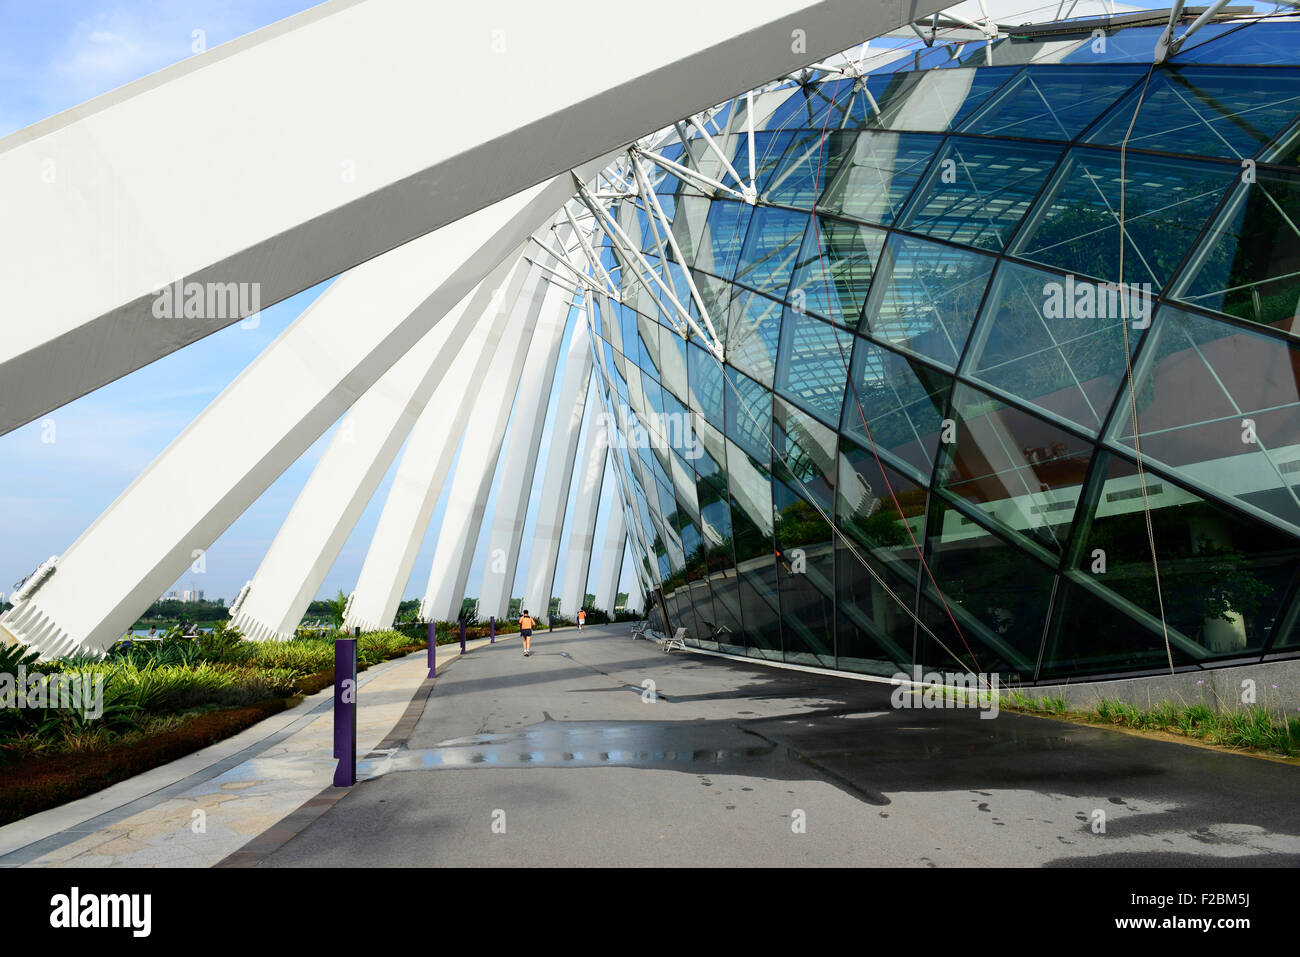 Jogging by the flower dome at the Gardens by the Bay. - Stock Image